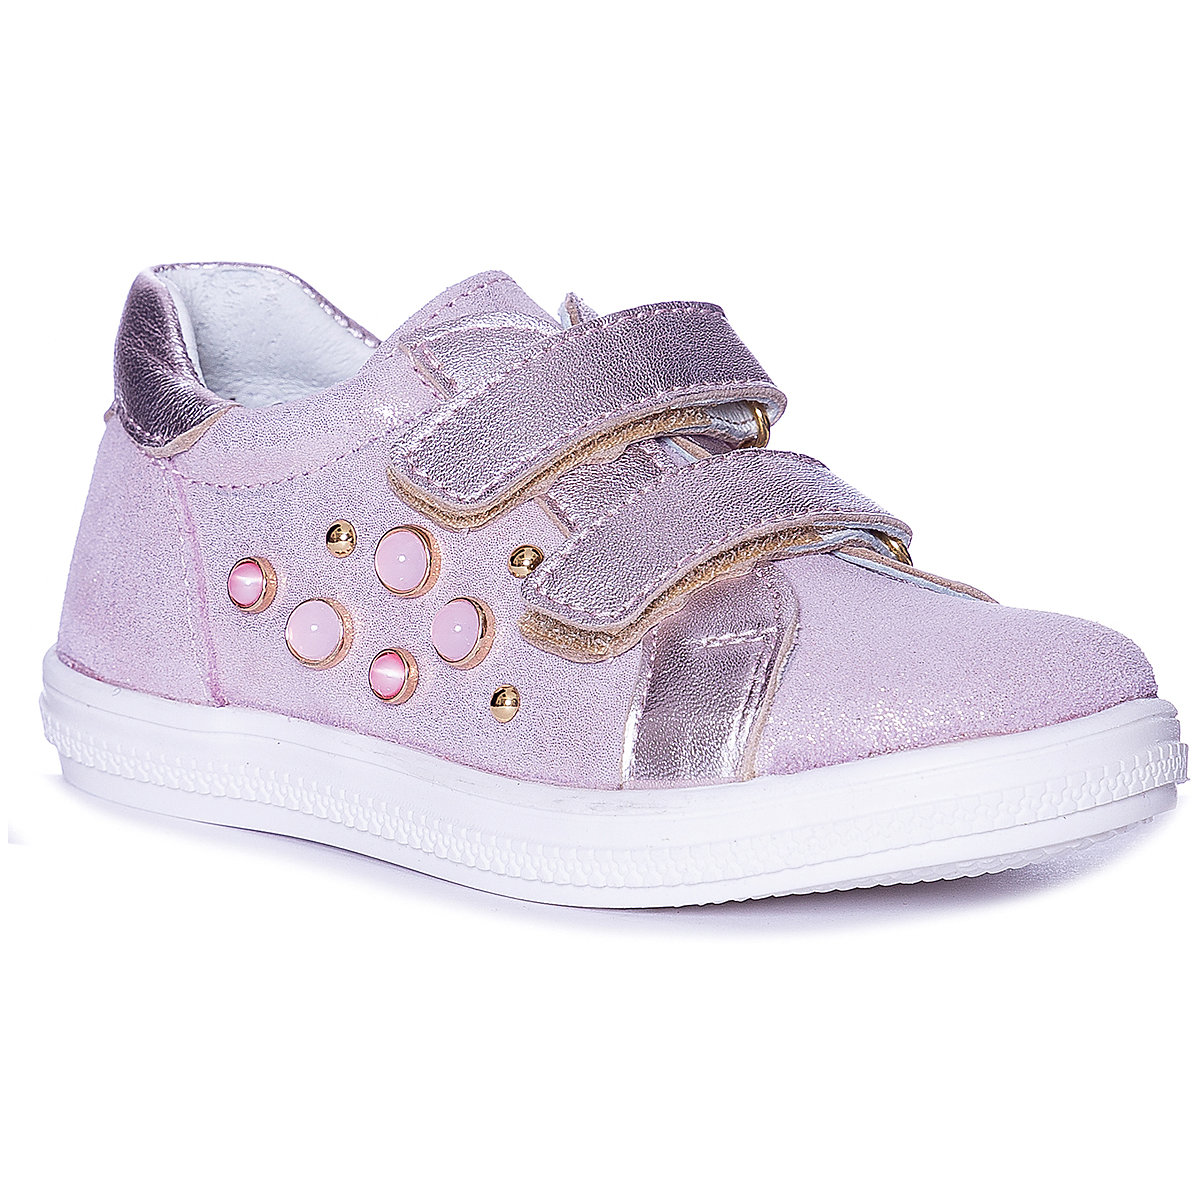 KOTOFEY Children Casual Shoes 10813996 sneakers running shoes for children Pink sport Girls Leather MTpromo miyagina high quality genuine leather women shoes female casual fashion flats spring autumn driving shoes women leather loafers